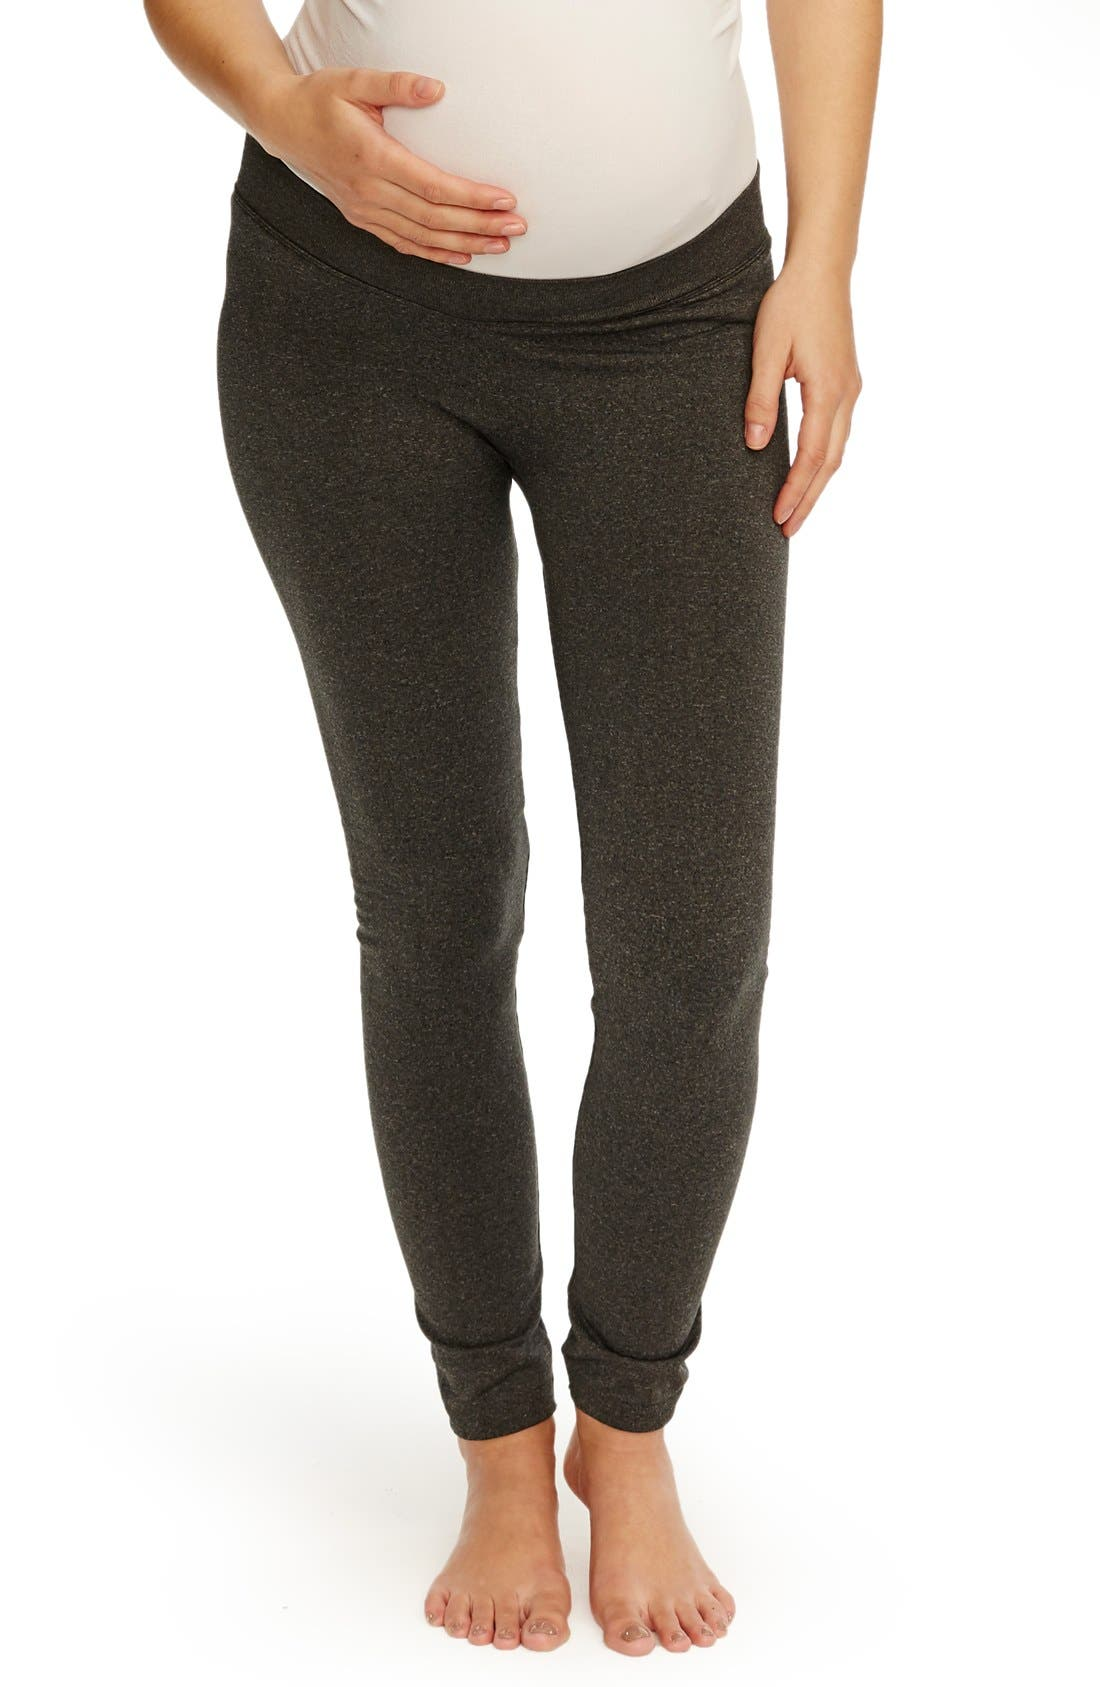 Seamless Low Rise Maternity Leggings,                         Main,                         color, Charcoal Heather